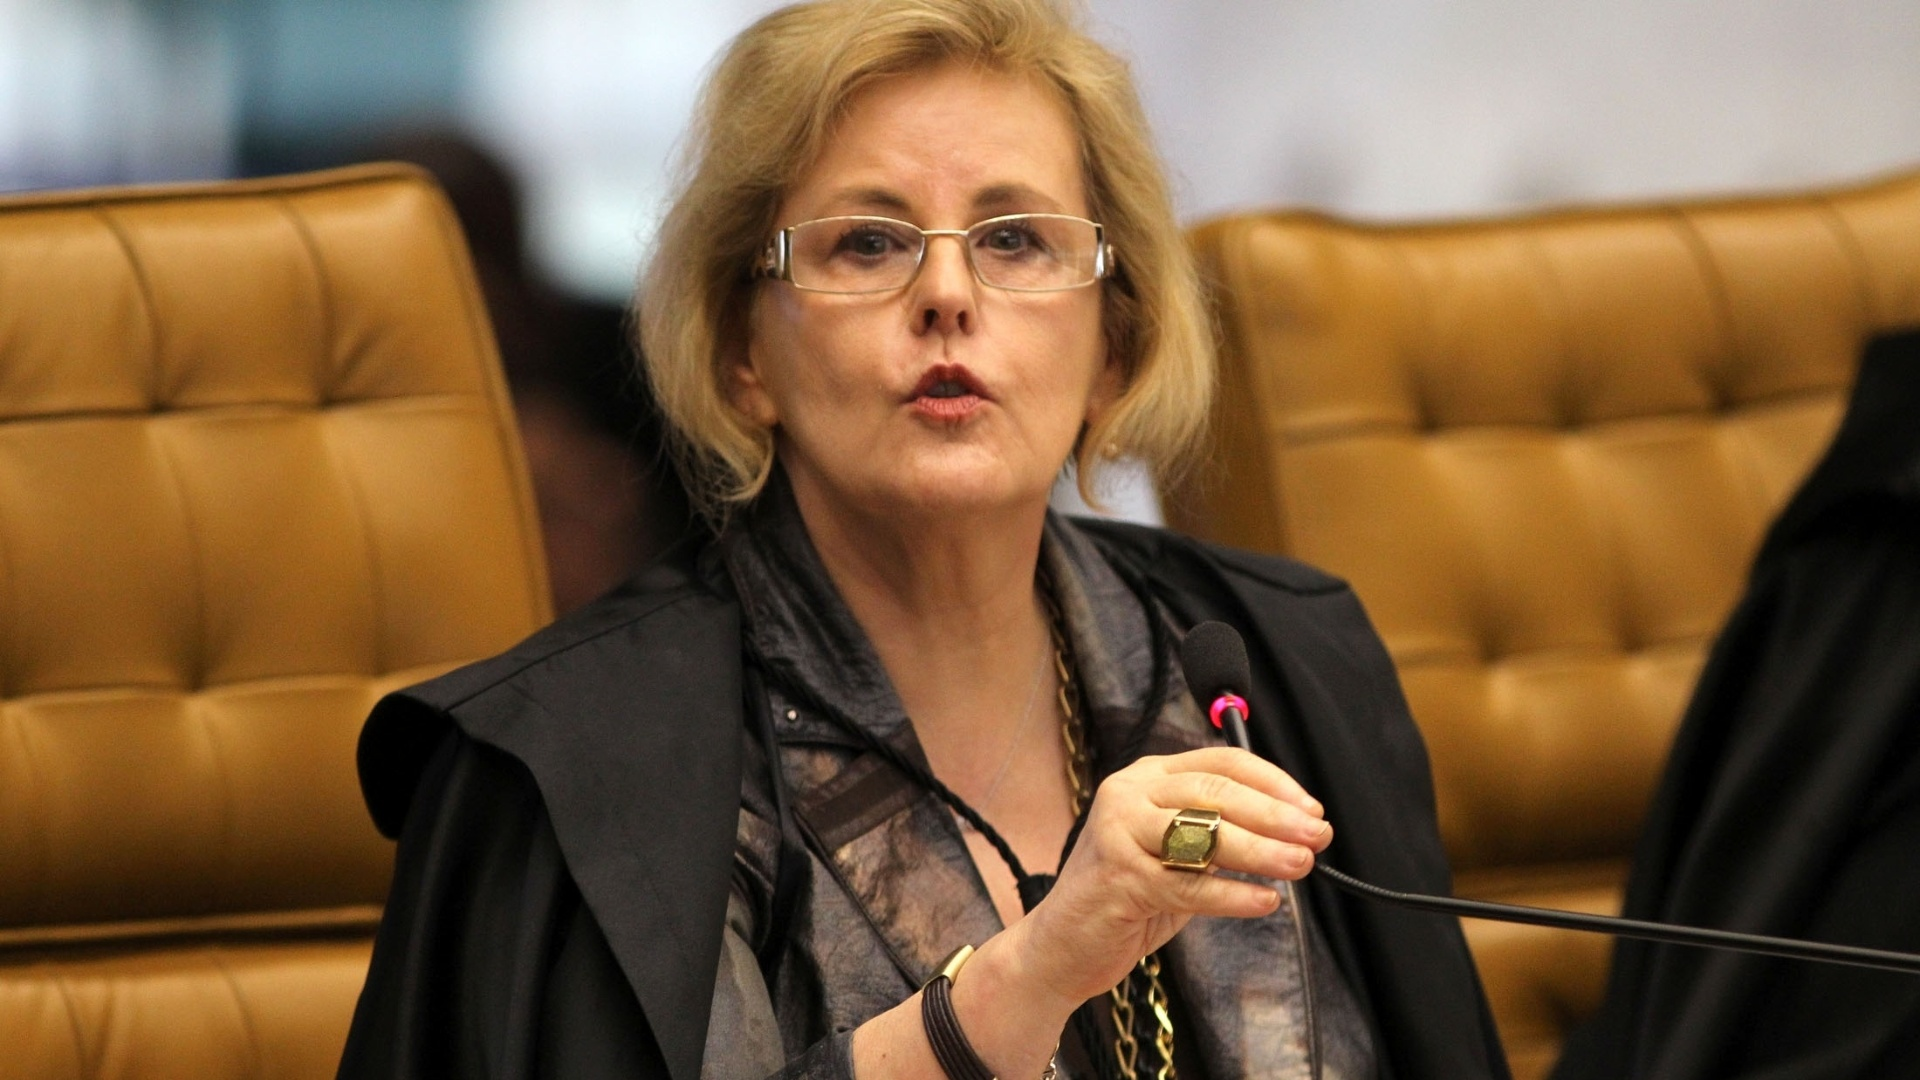 22.out.2012 - Ministra Rosa Weber, acompanhando o revisor do processo do mensalo, Ricardo Lewandowski, absolve Dirceu e outros 12 rus da acusao de formao de quadrilha 